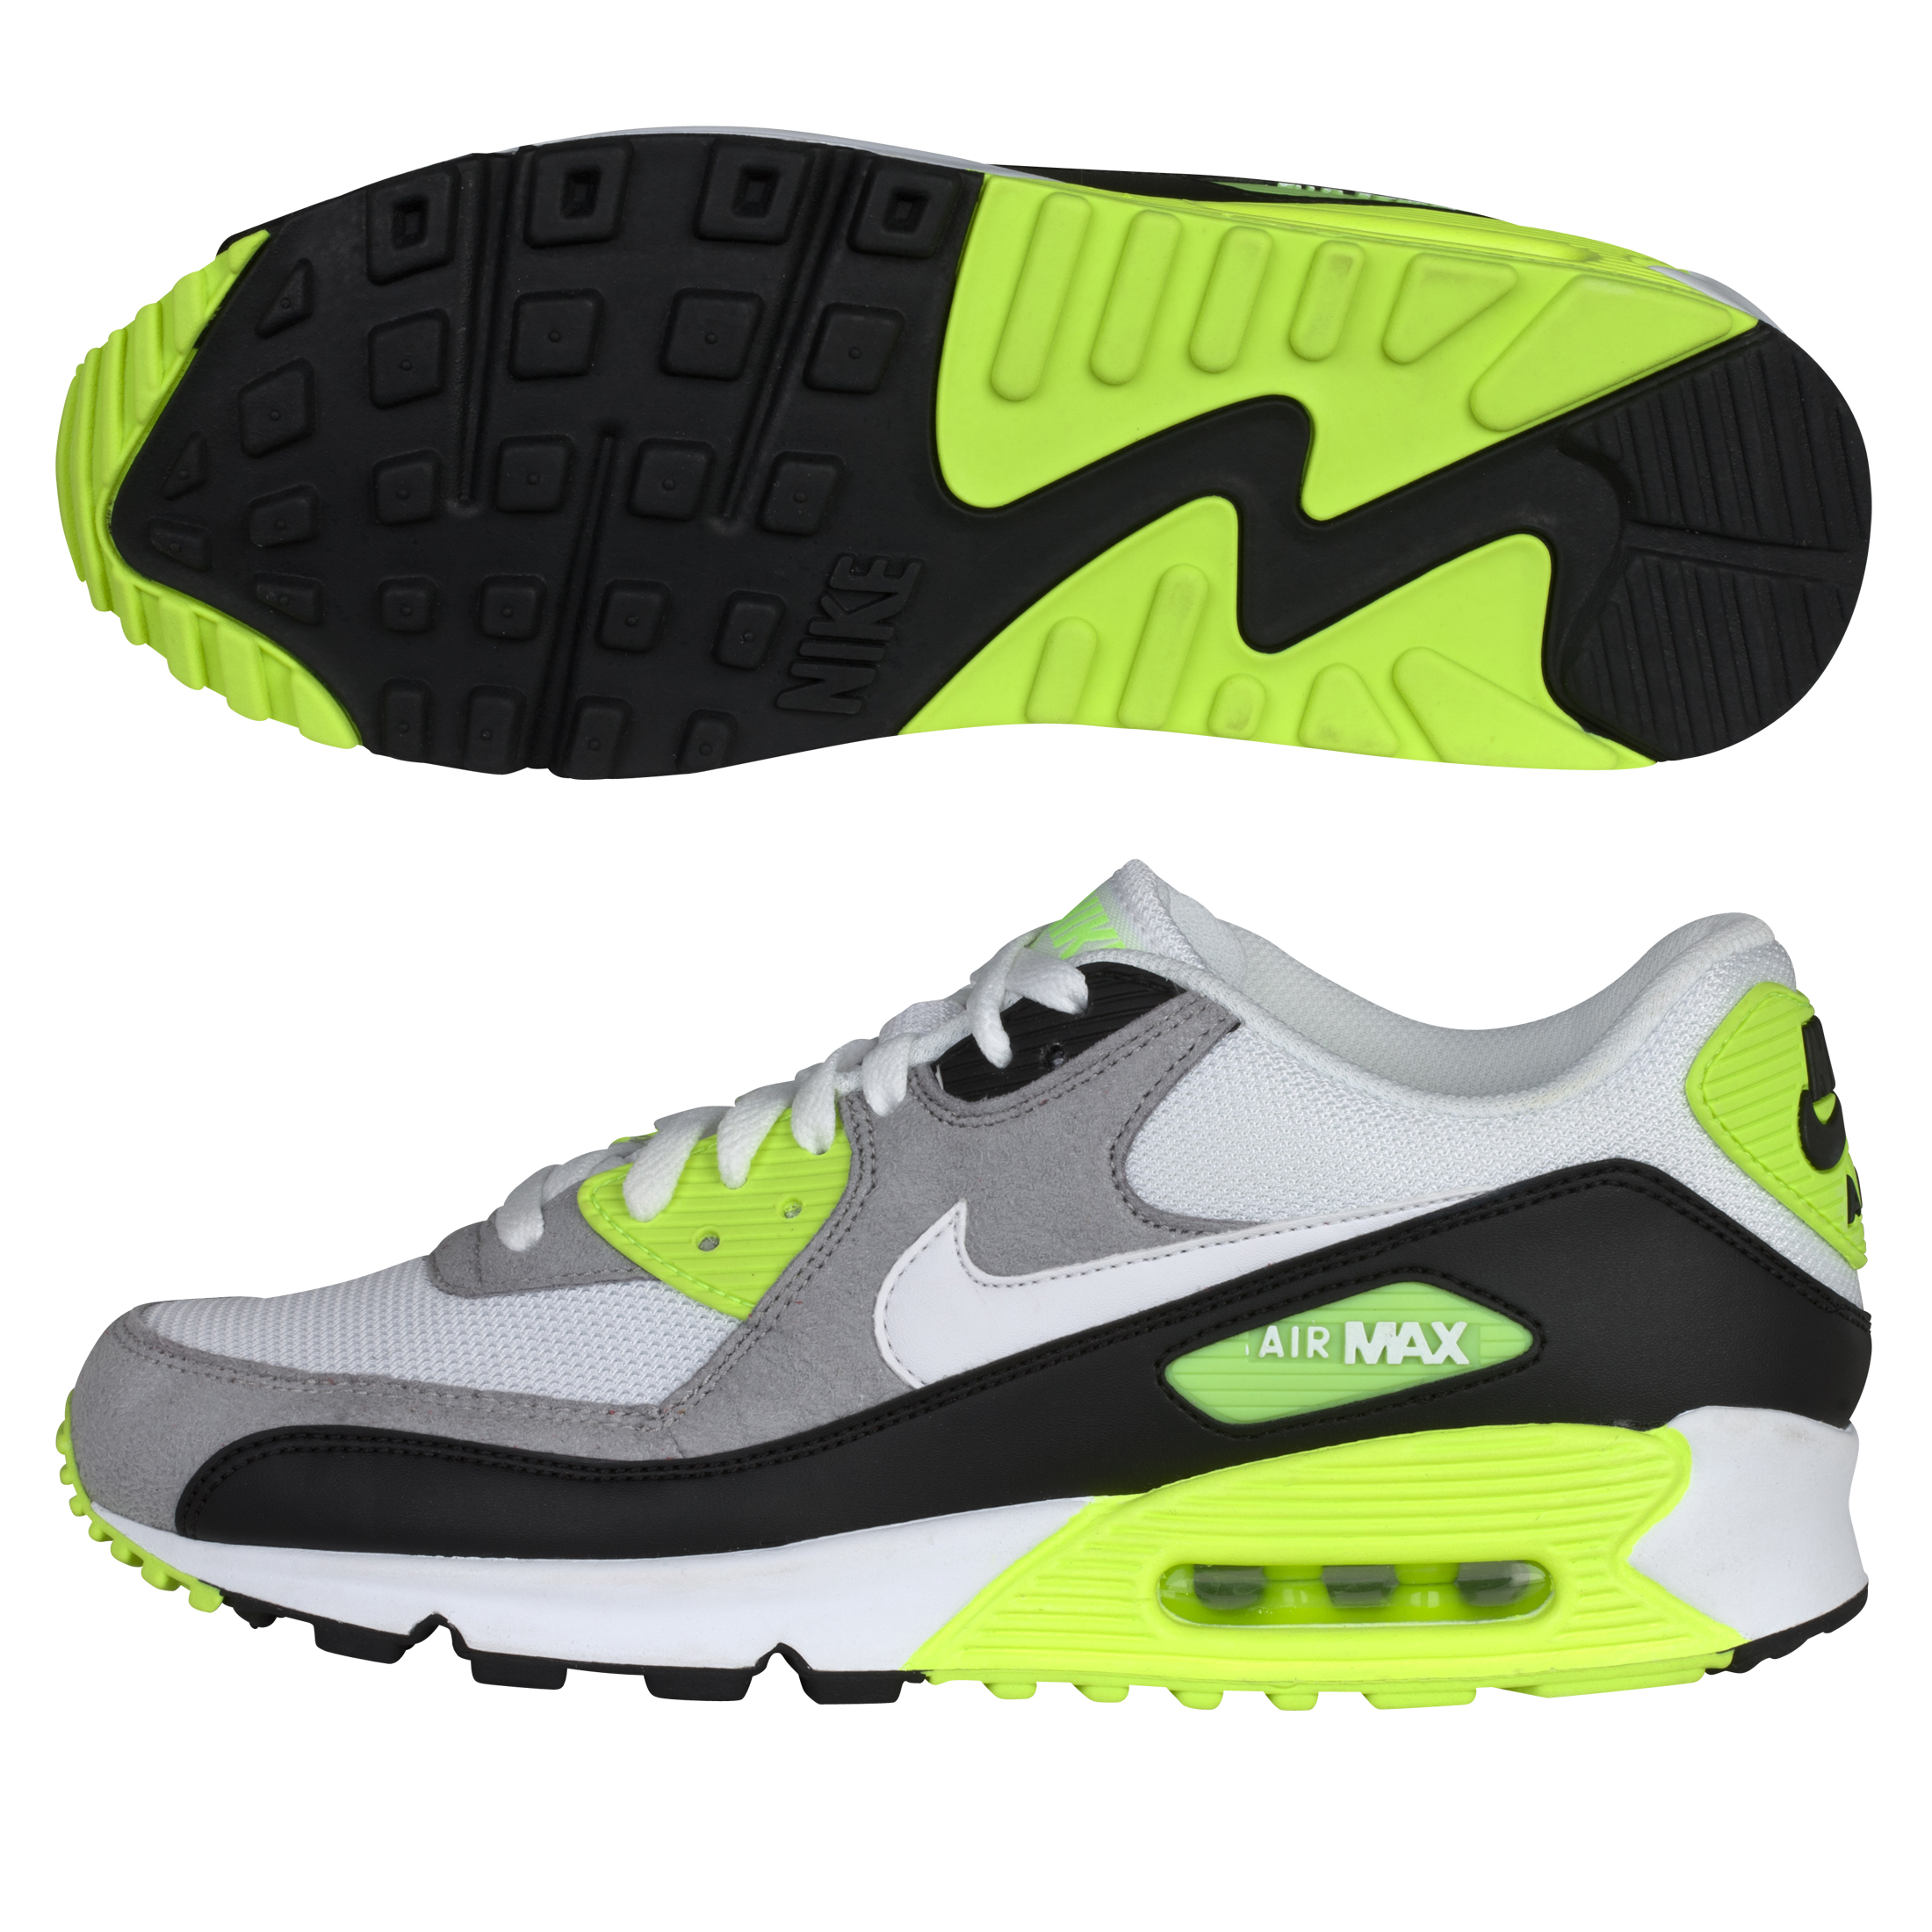 Nike Air Max 90 Trainers - Black/White/Medium Grey